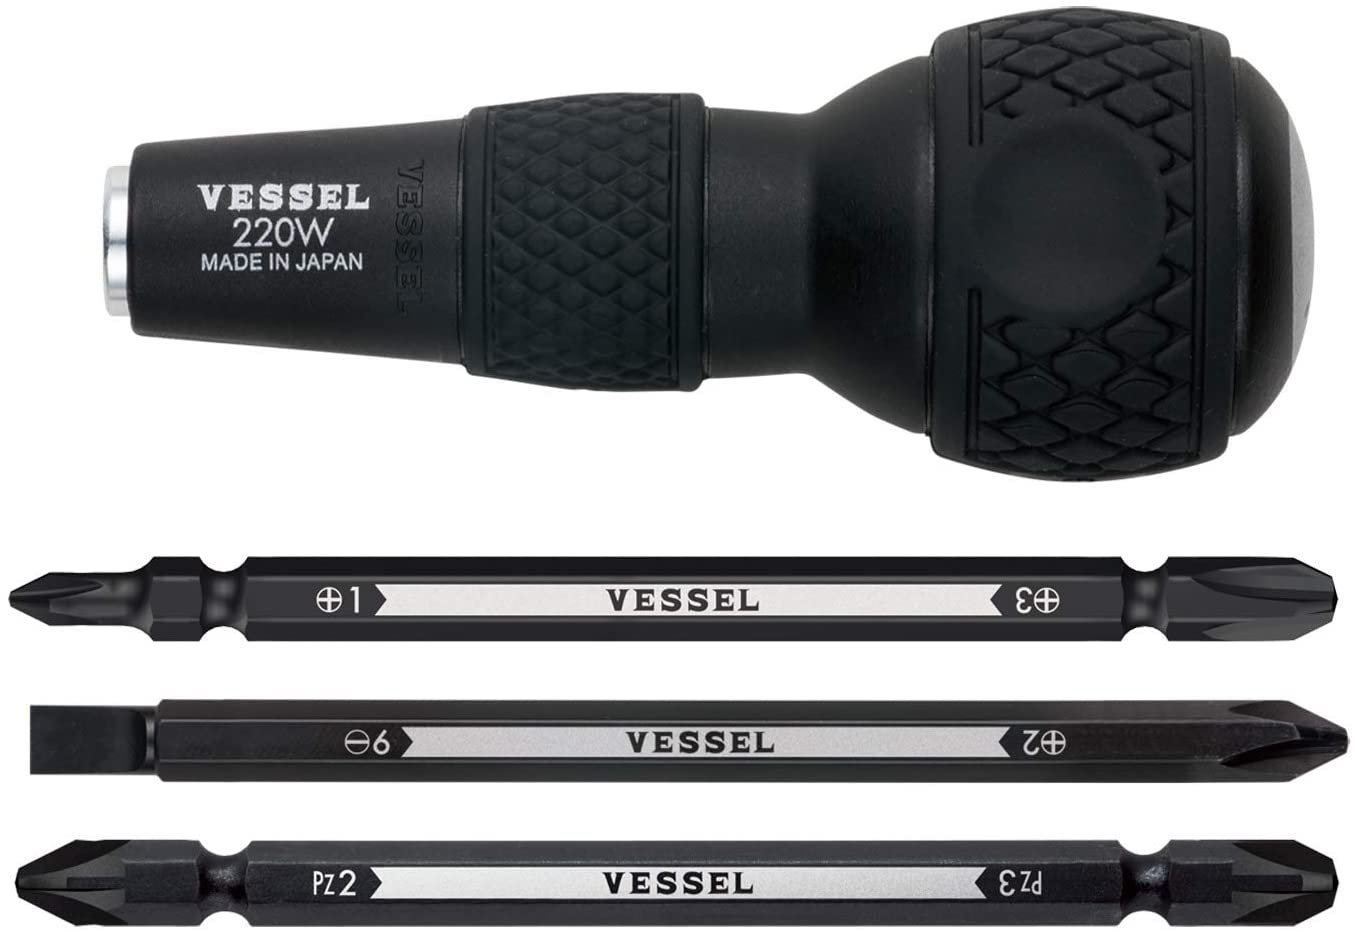 Bessel (Vessel) Ball Grip Difference and Screwdrivers Set No.220w-3 (Basic)